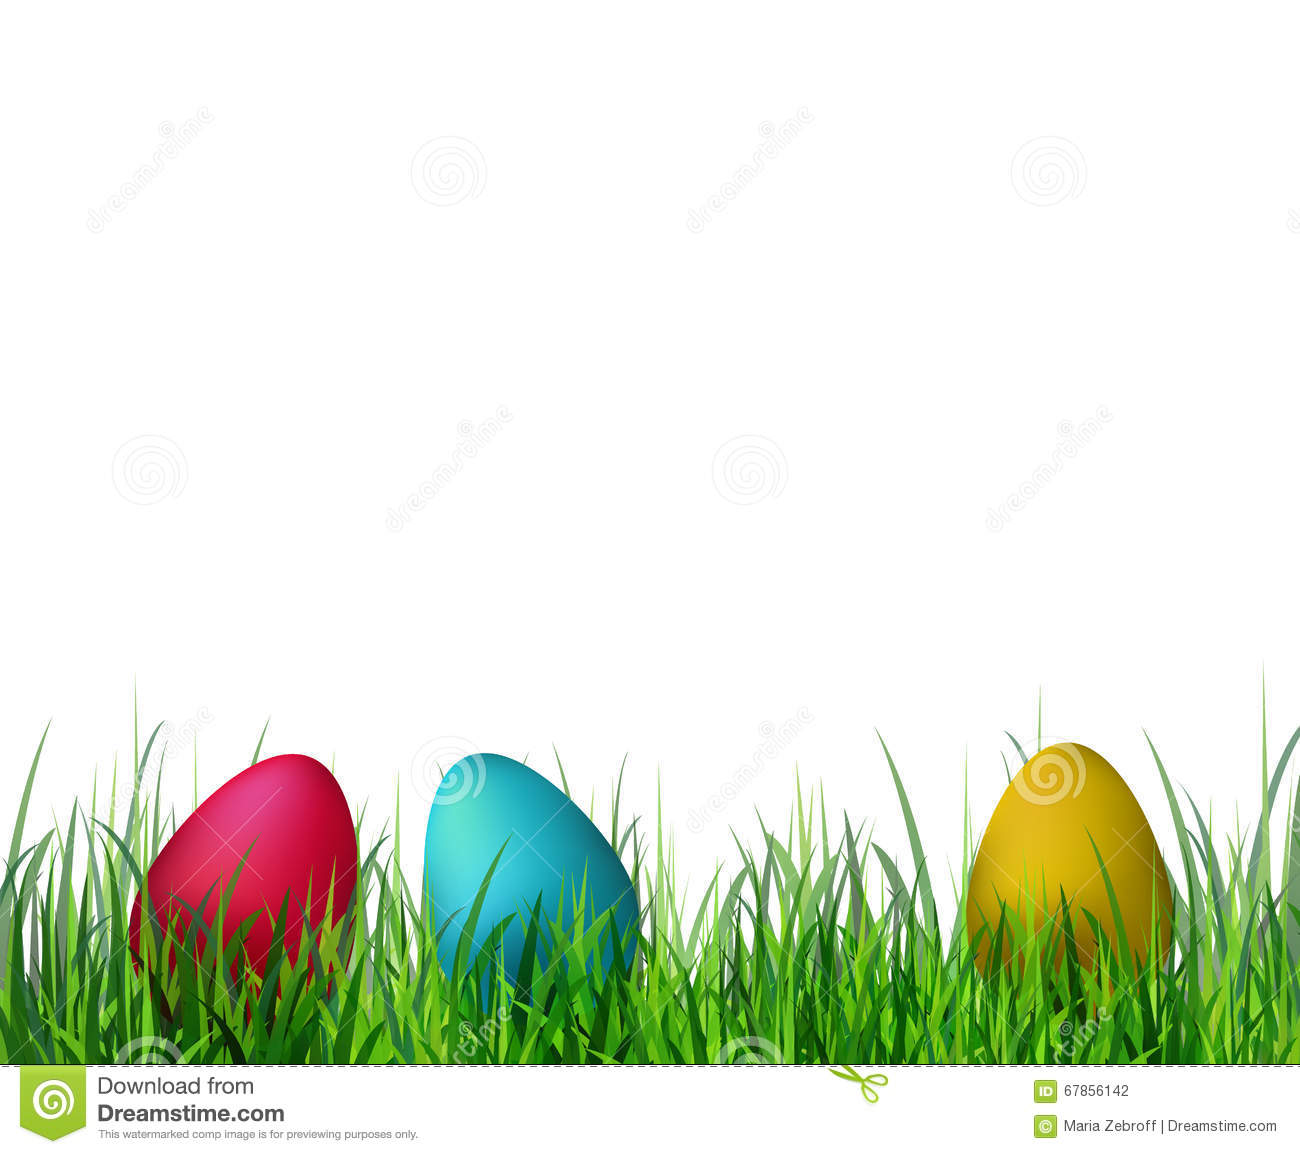 easter eggs in grass clipart | free download best easter eggs in